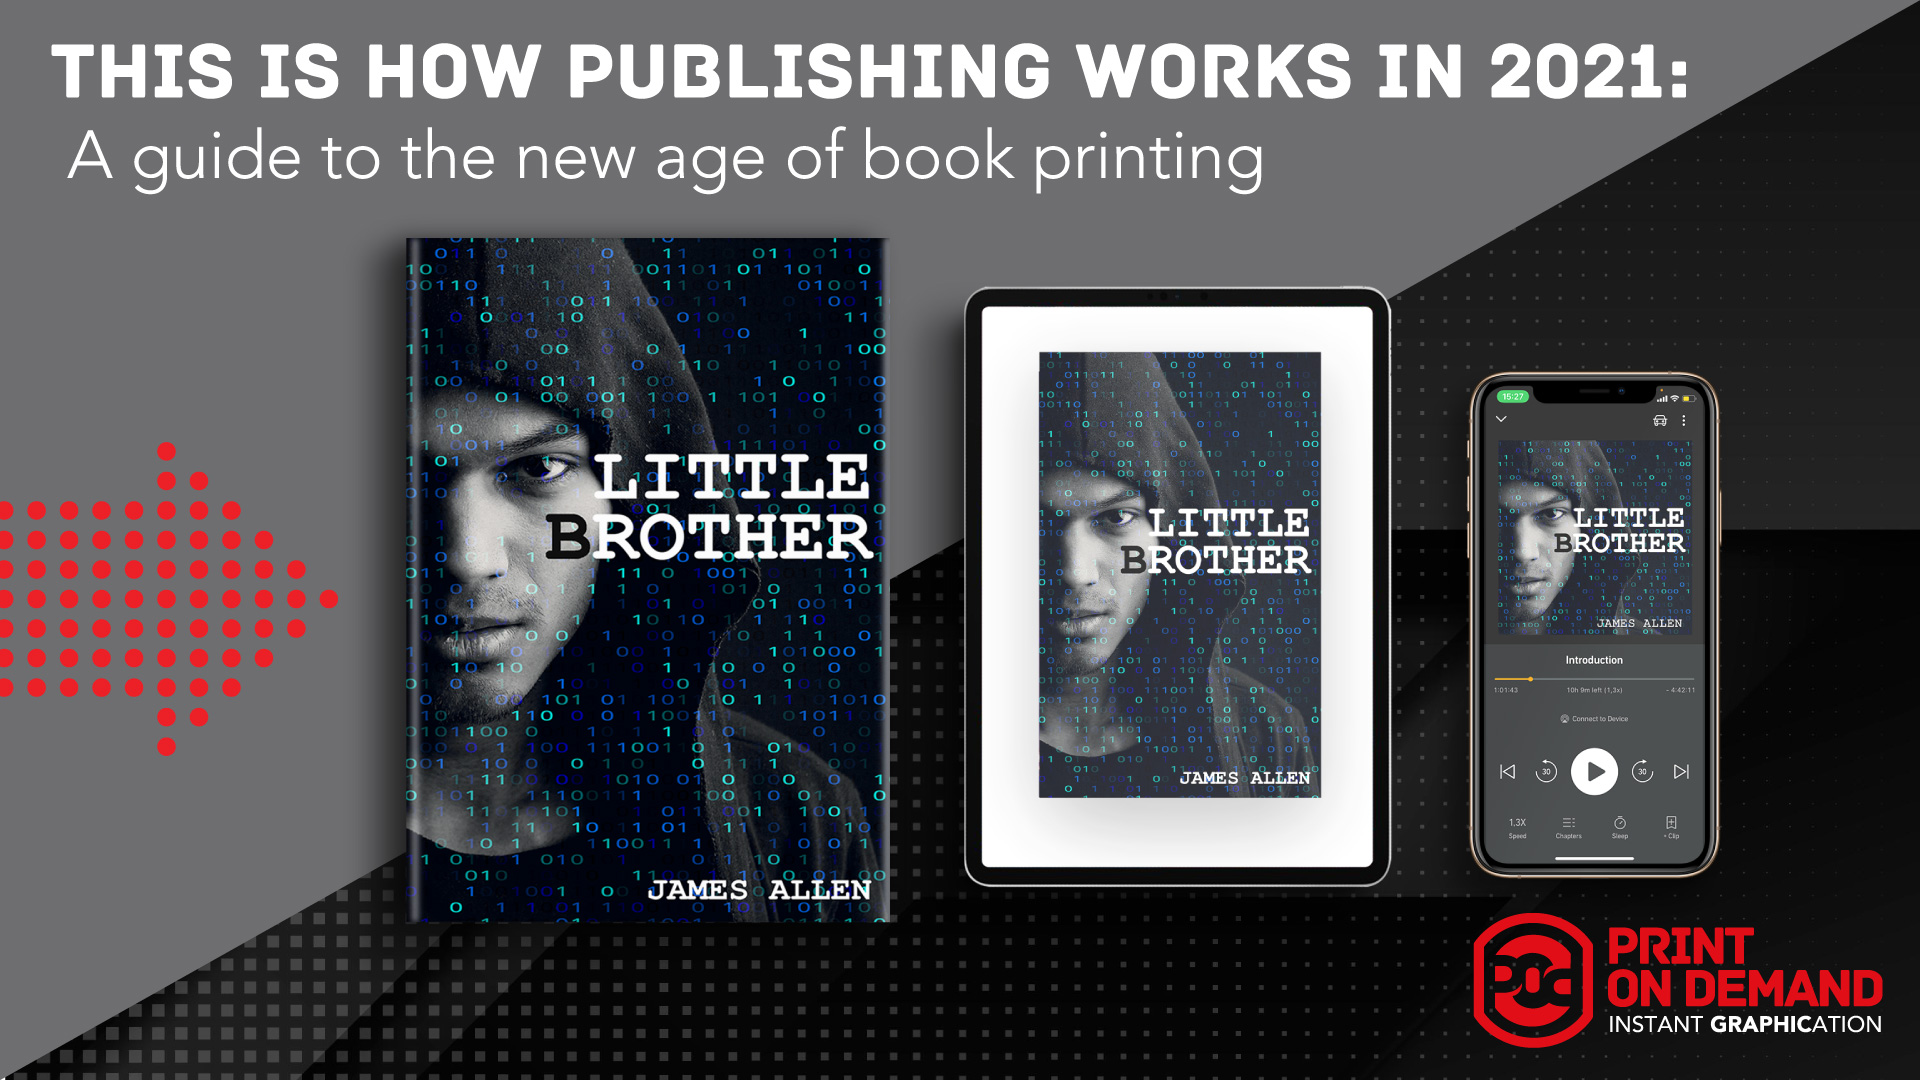 This is how publishing works in 2021: A guide to the new age of book printing